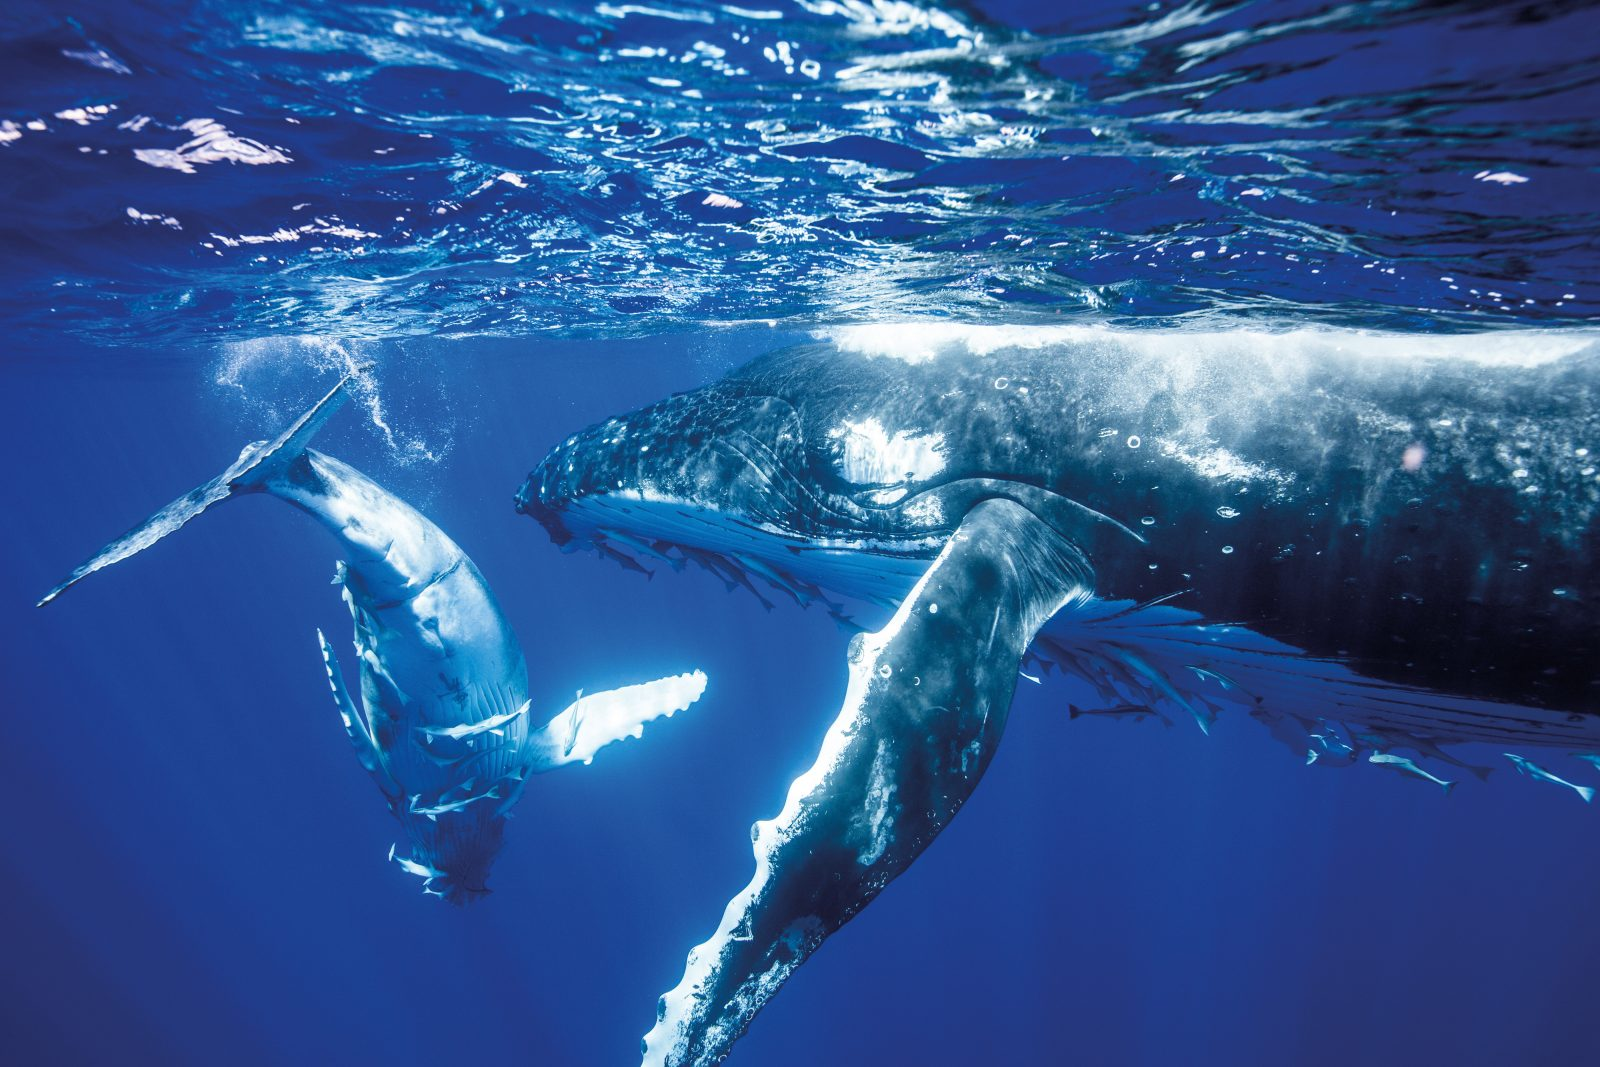 A newborn humpback calf swims with its mother in the warm breeding grounds of Vava'u in Tonga, one of the source populations of the whales observed at Raoul Island. Being dependent on a constant supply of maternal nourishment—some 200 litres per day of rich, fatty milk the consistency of cottage cheese—calves travel close beside their mothers throughout the southern migration. At Raoul scientists often saw groups of two or three mother-calf pairs, travelling or socialising together.